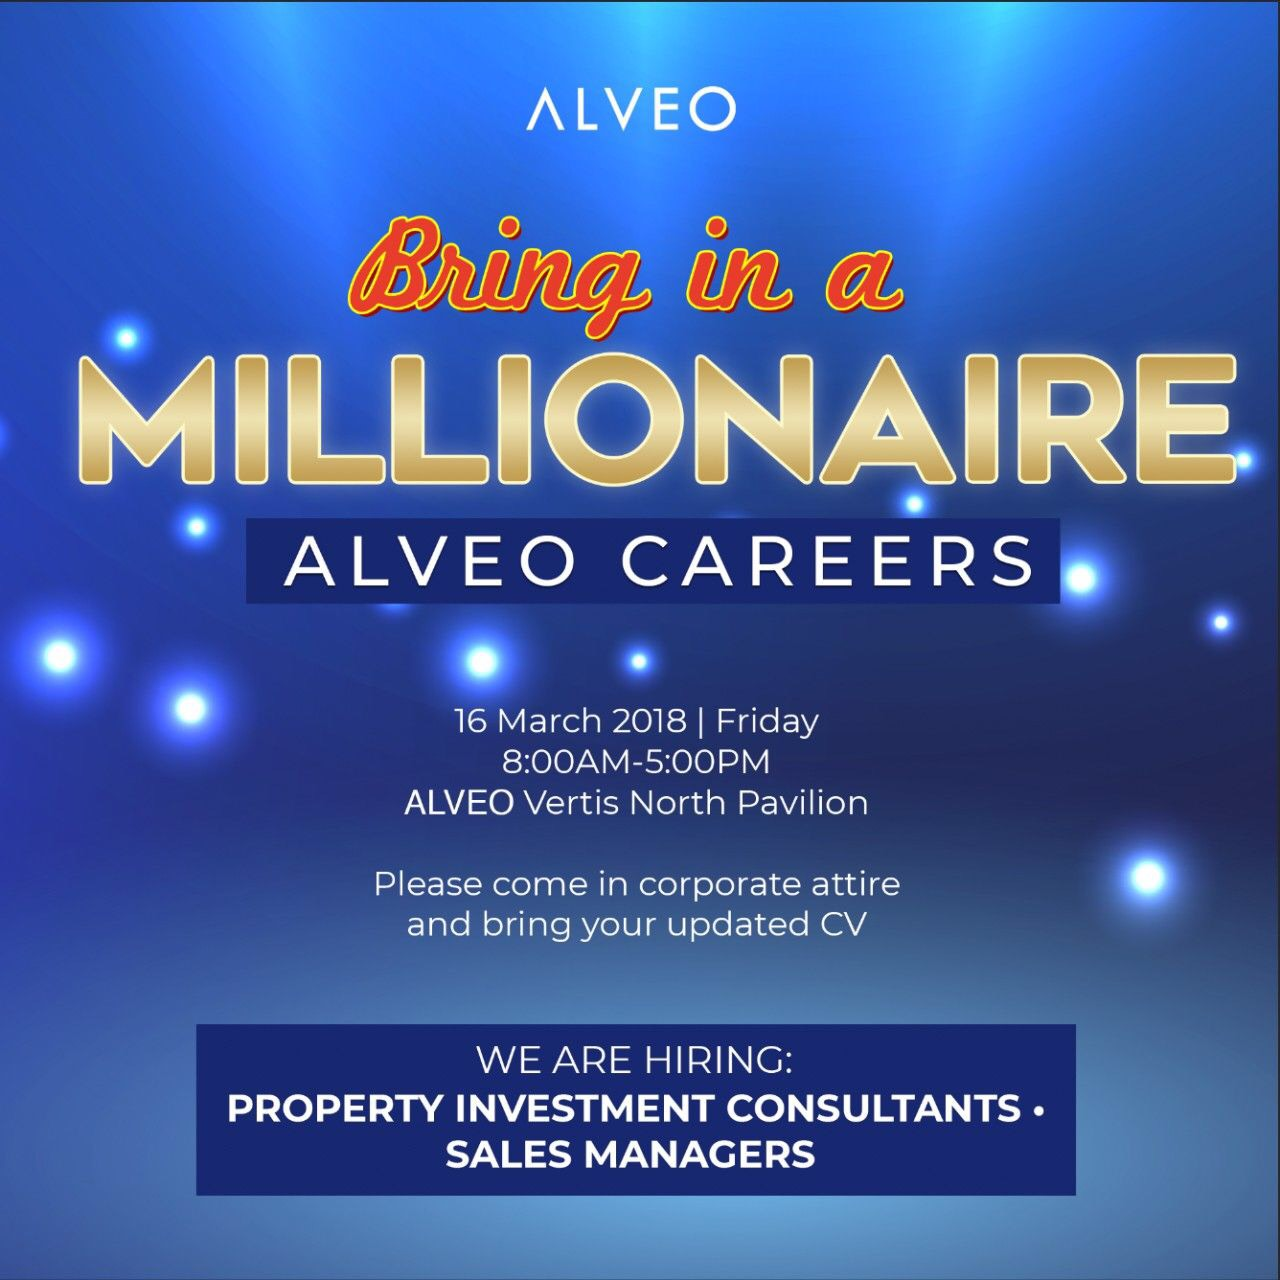 Property Investment Consultant   Property Specialist   Real Estate Sales from Alveo Land Corp   Ayala Land Inc.